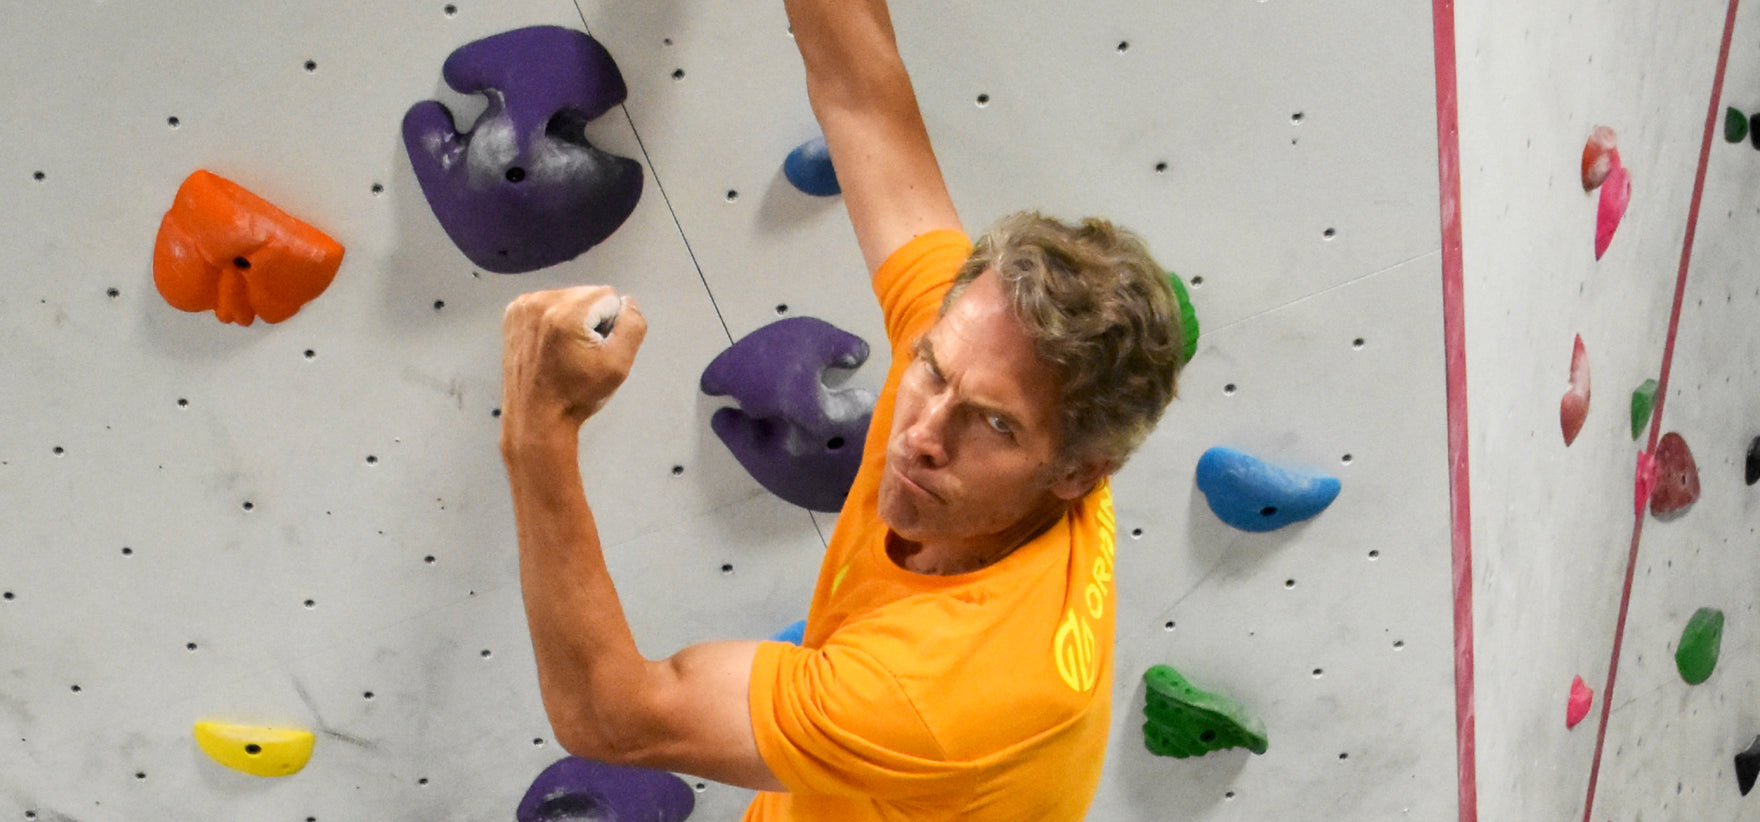 The Mountain of Youth: When is it too late to start rock climbing?